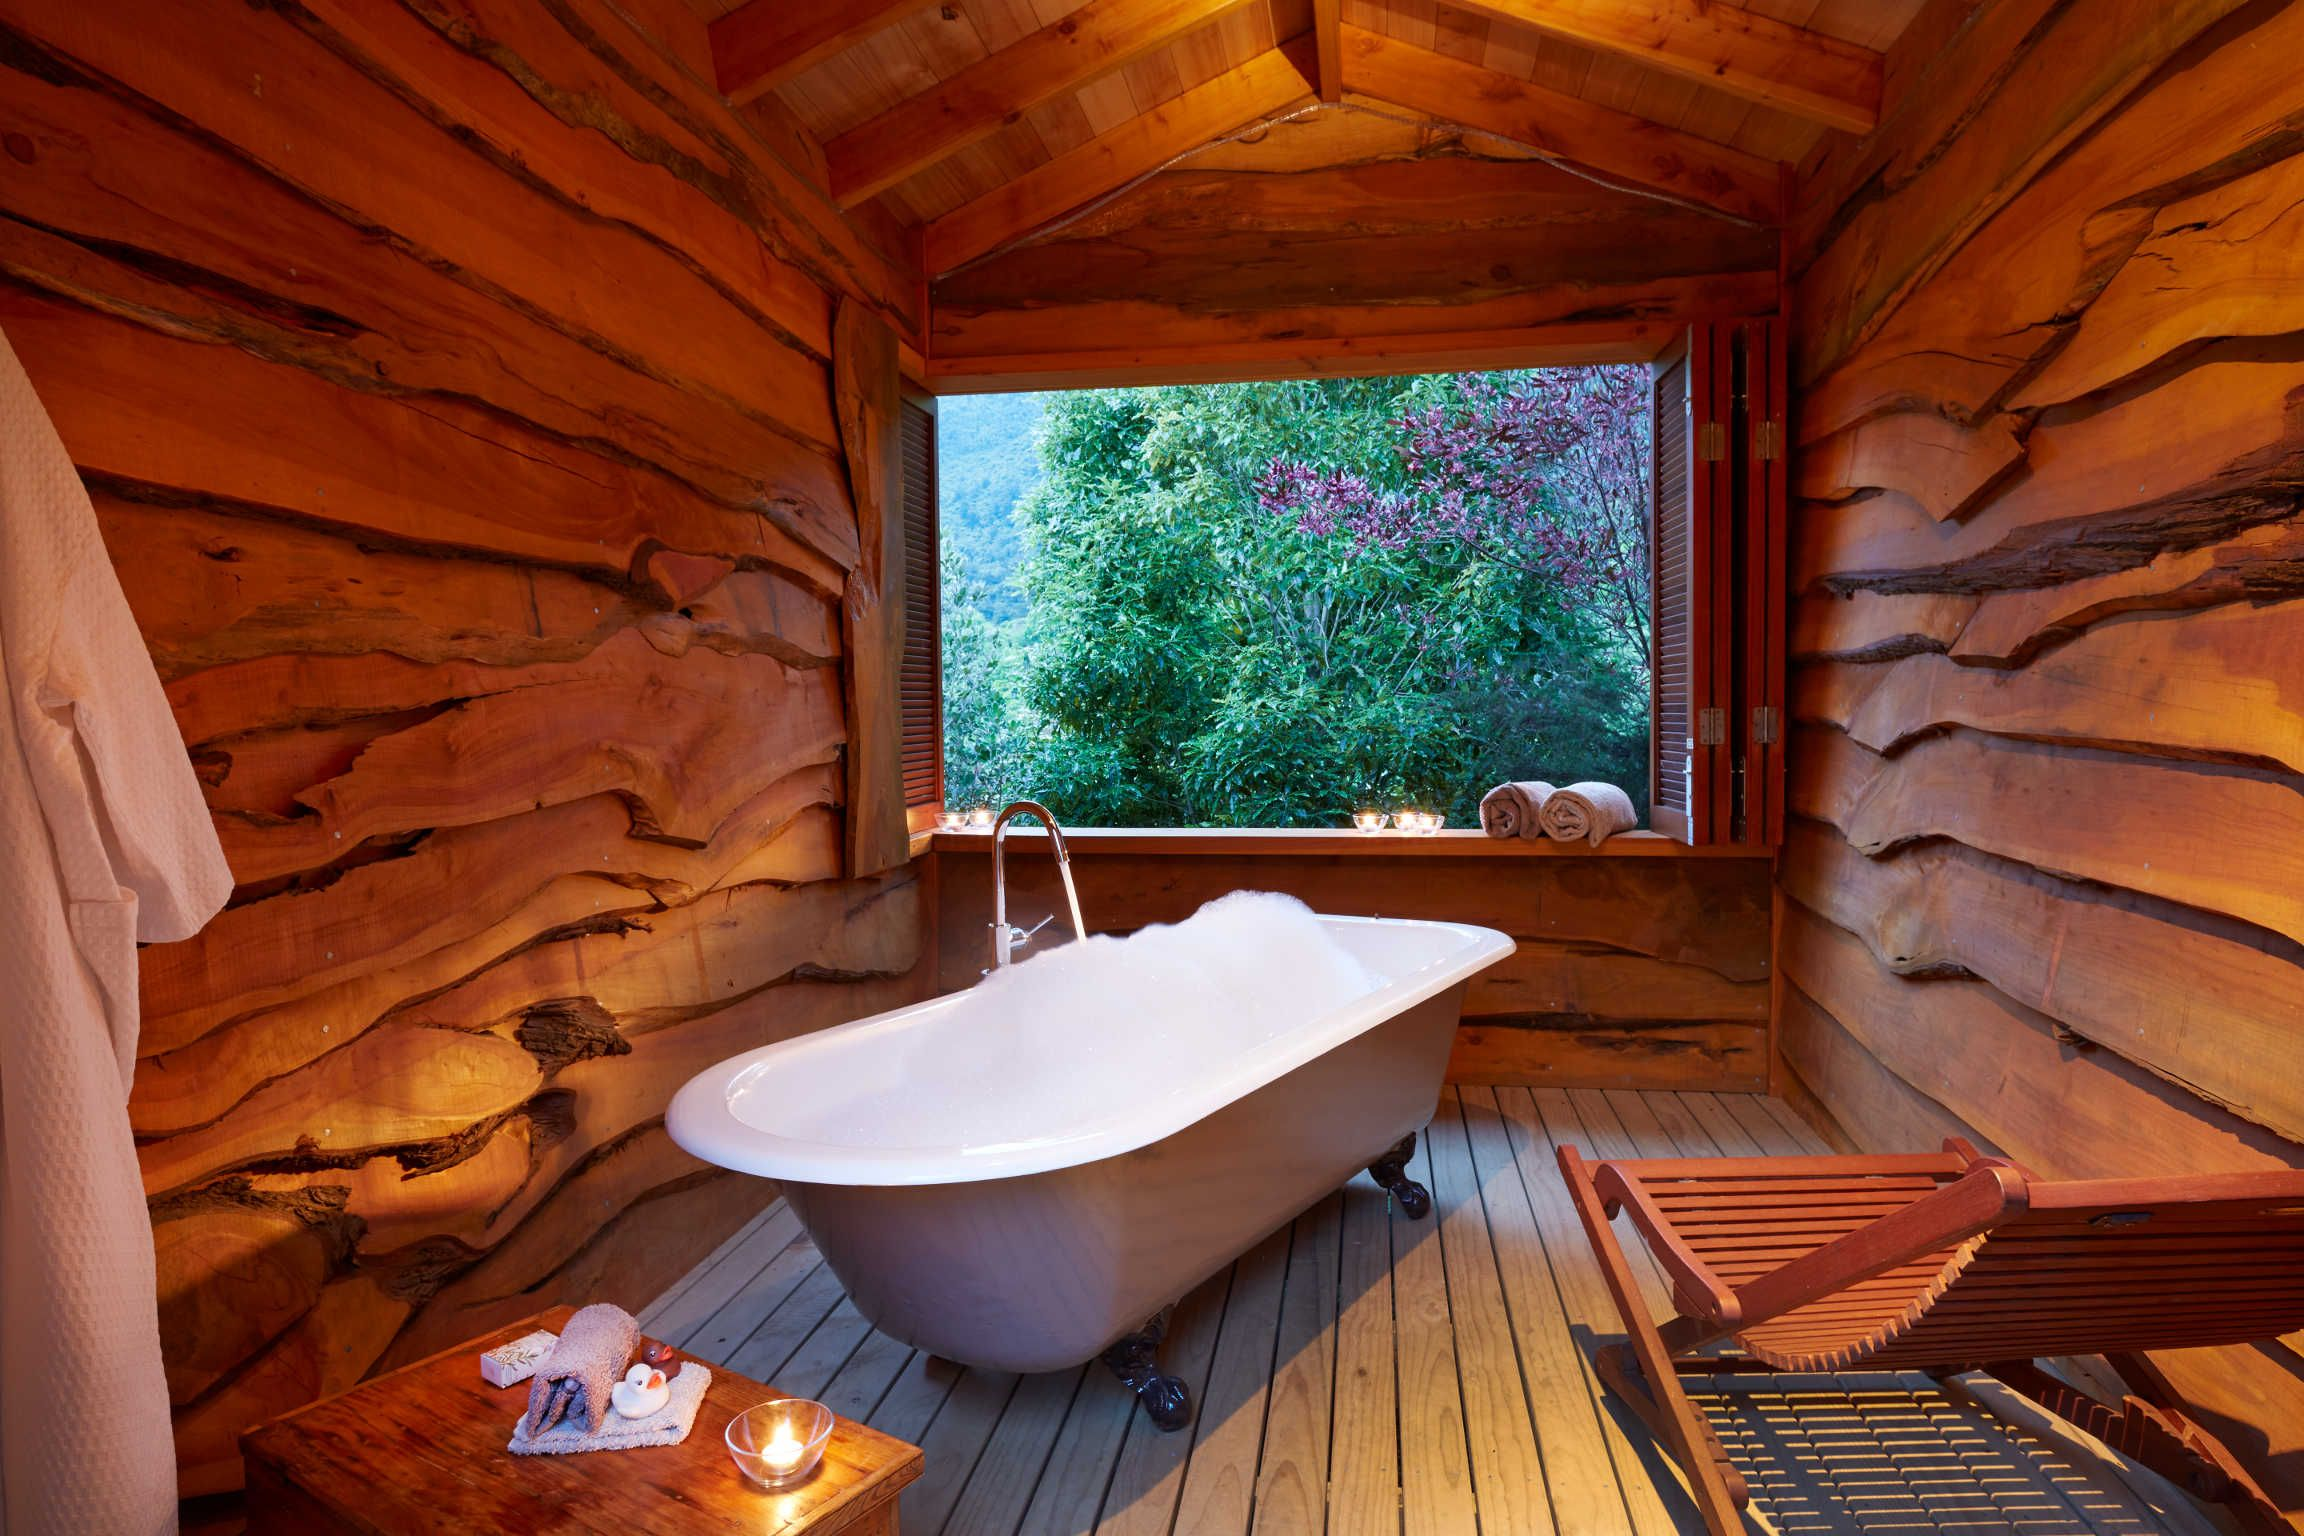 The Resurgence, World's 25 best Eco-Lodges, National Geographic Traveler 2013. The Resurgence is set in 50 acres of tranquil wilderness with 5km of bush tracks.